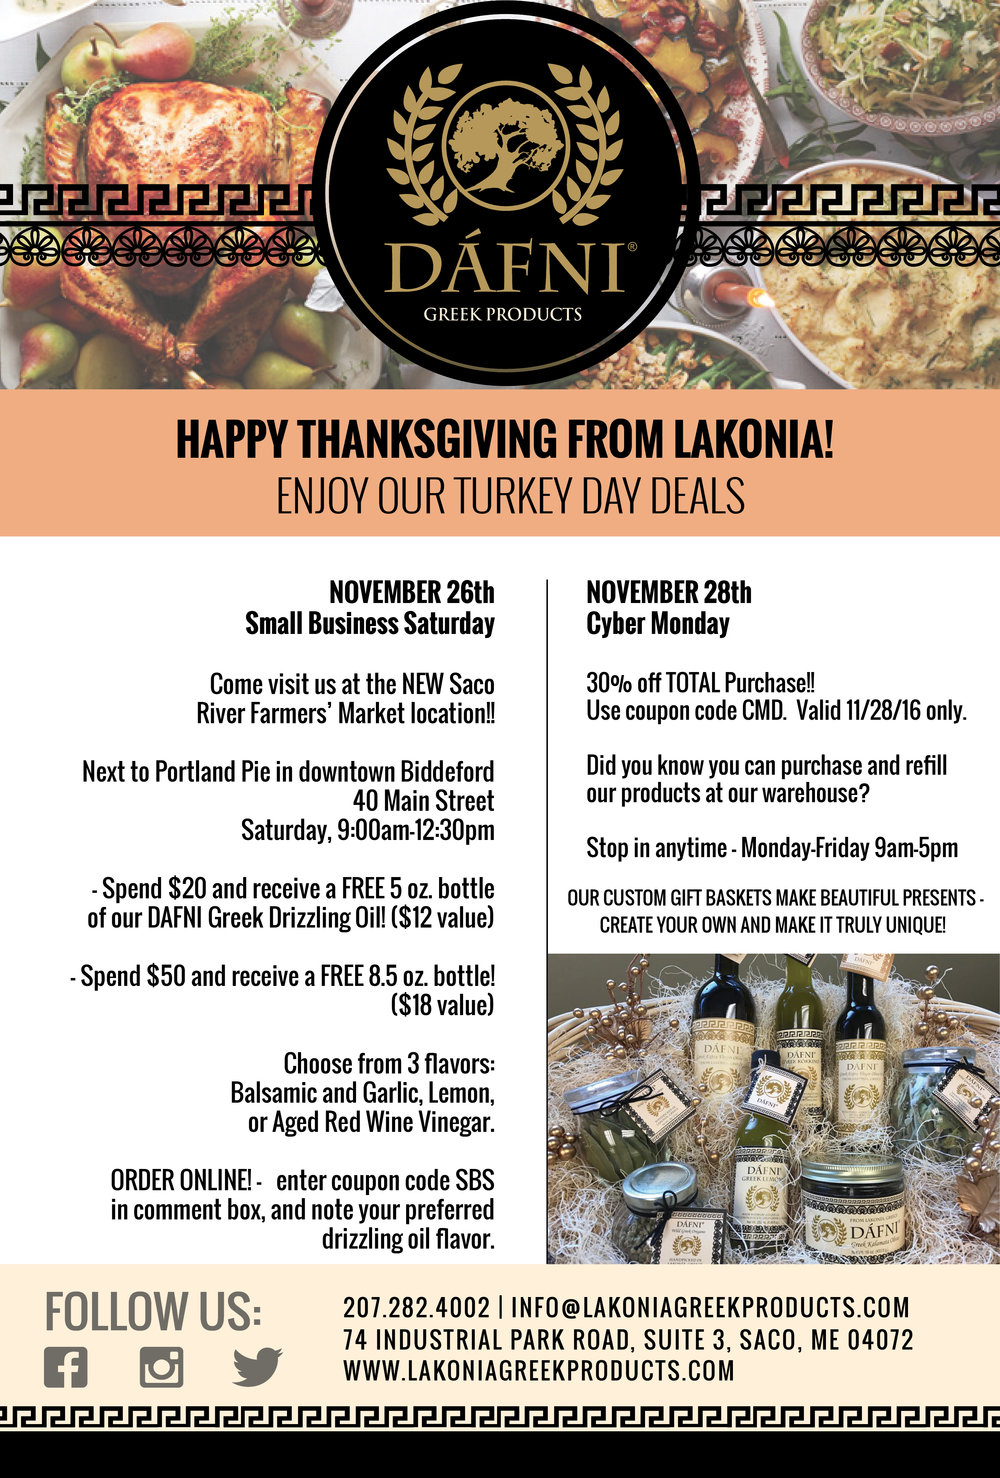 LAKONIA THANKSGIVING 2016 MAILER.jpg